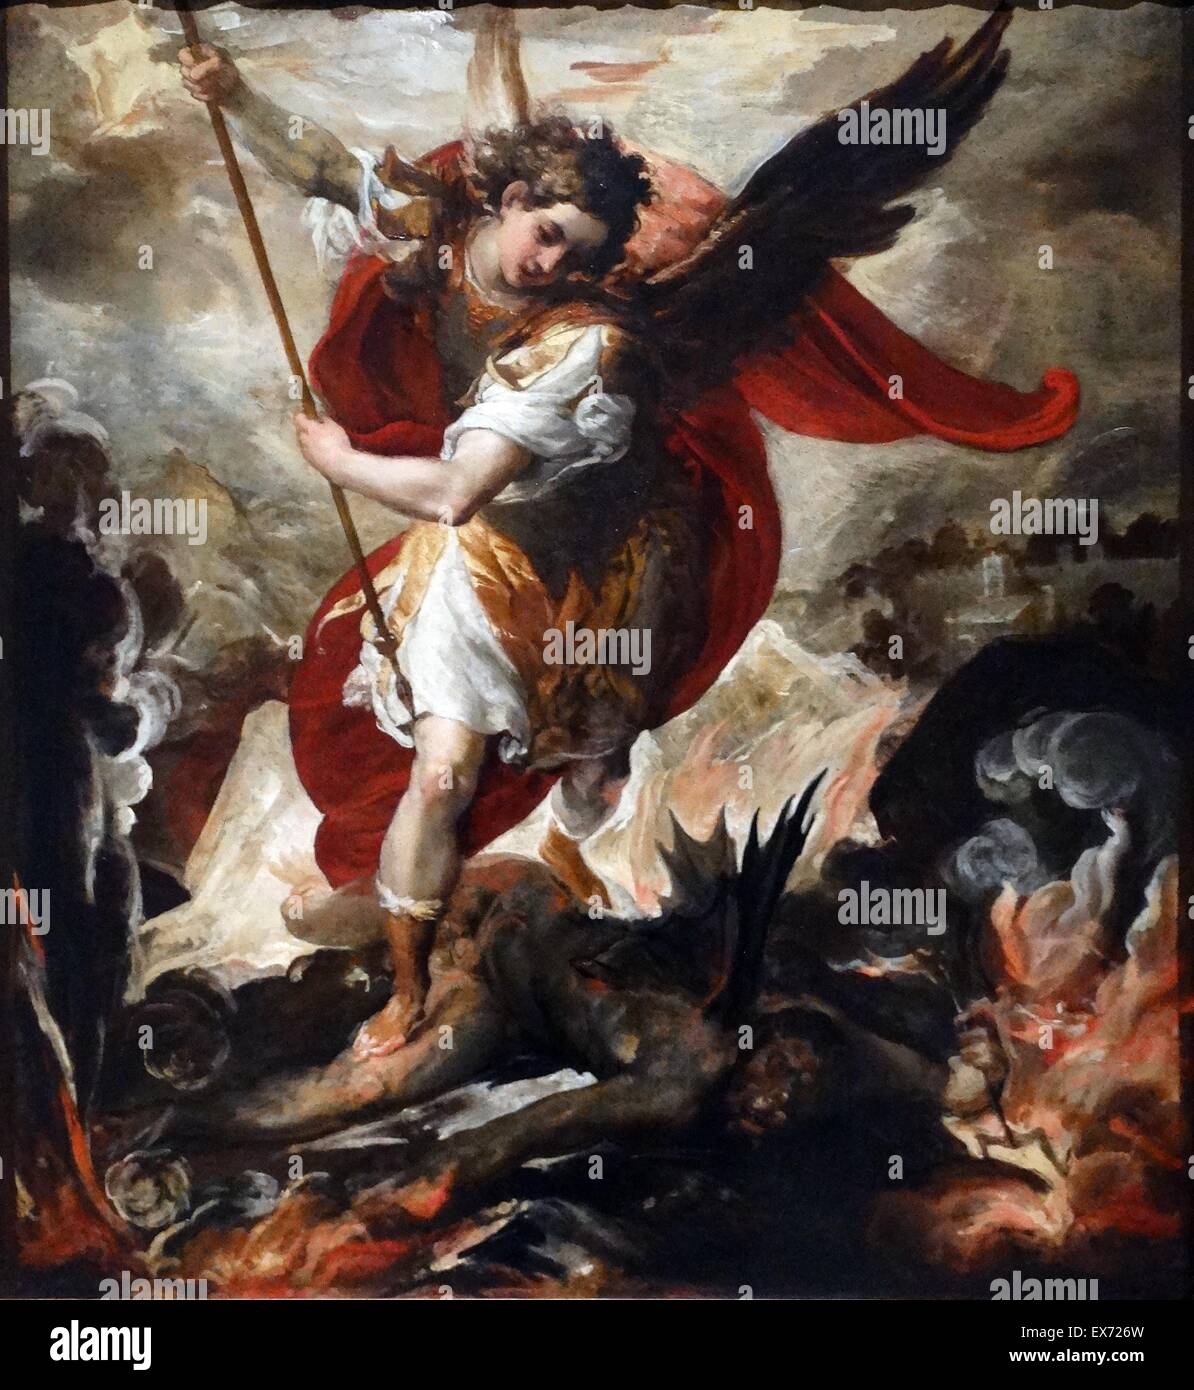 Saint Michael The Archangel Defeats Lucifer, 1656